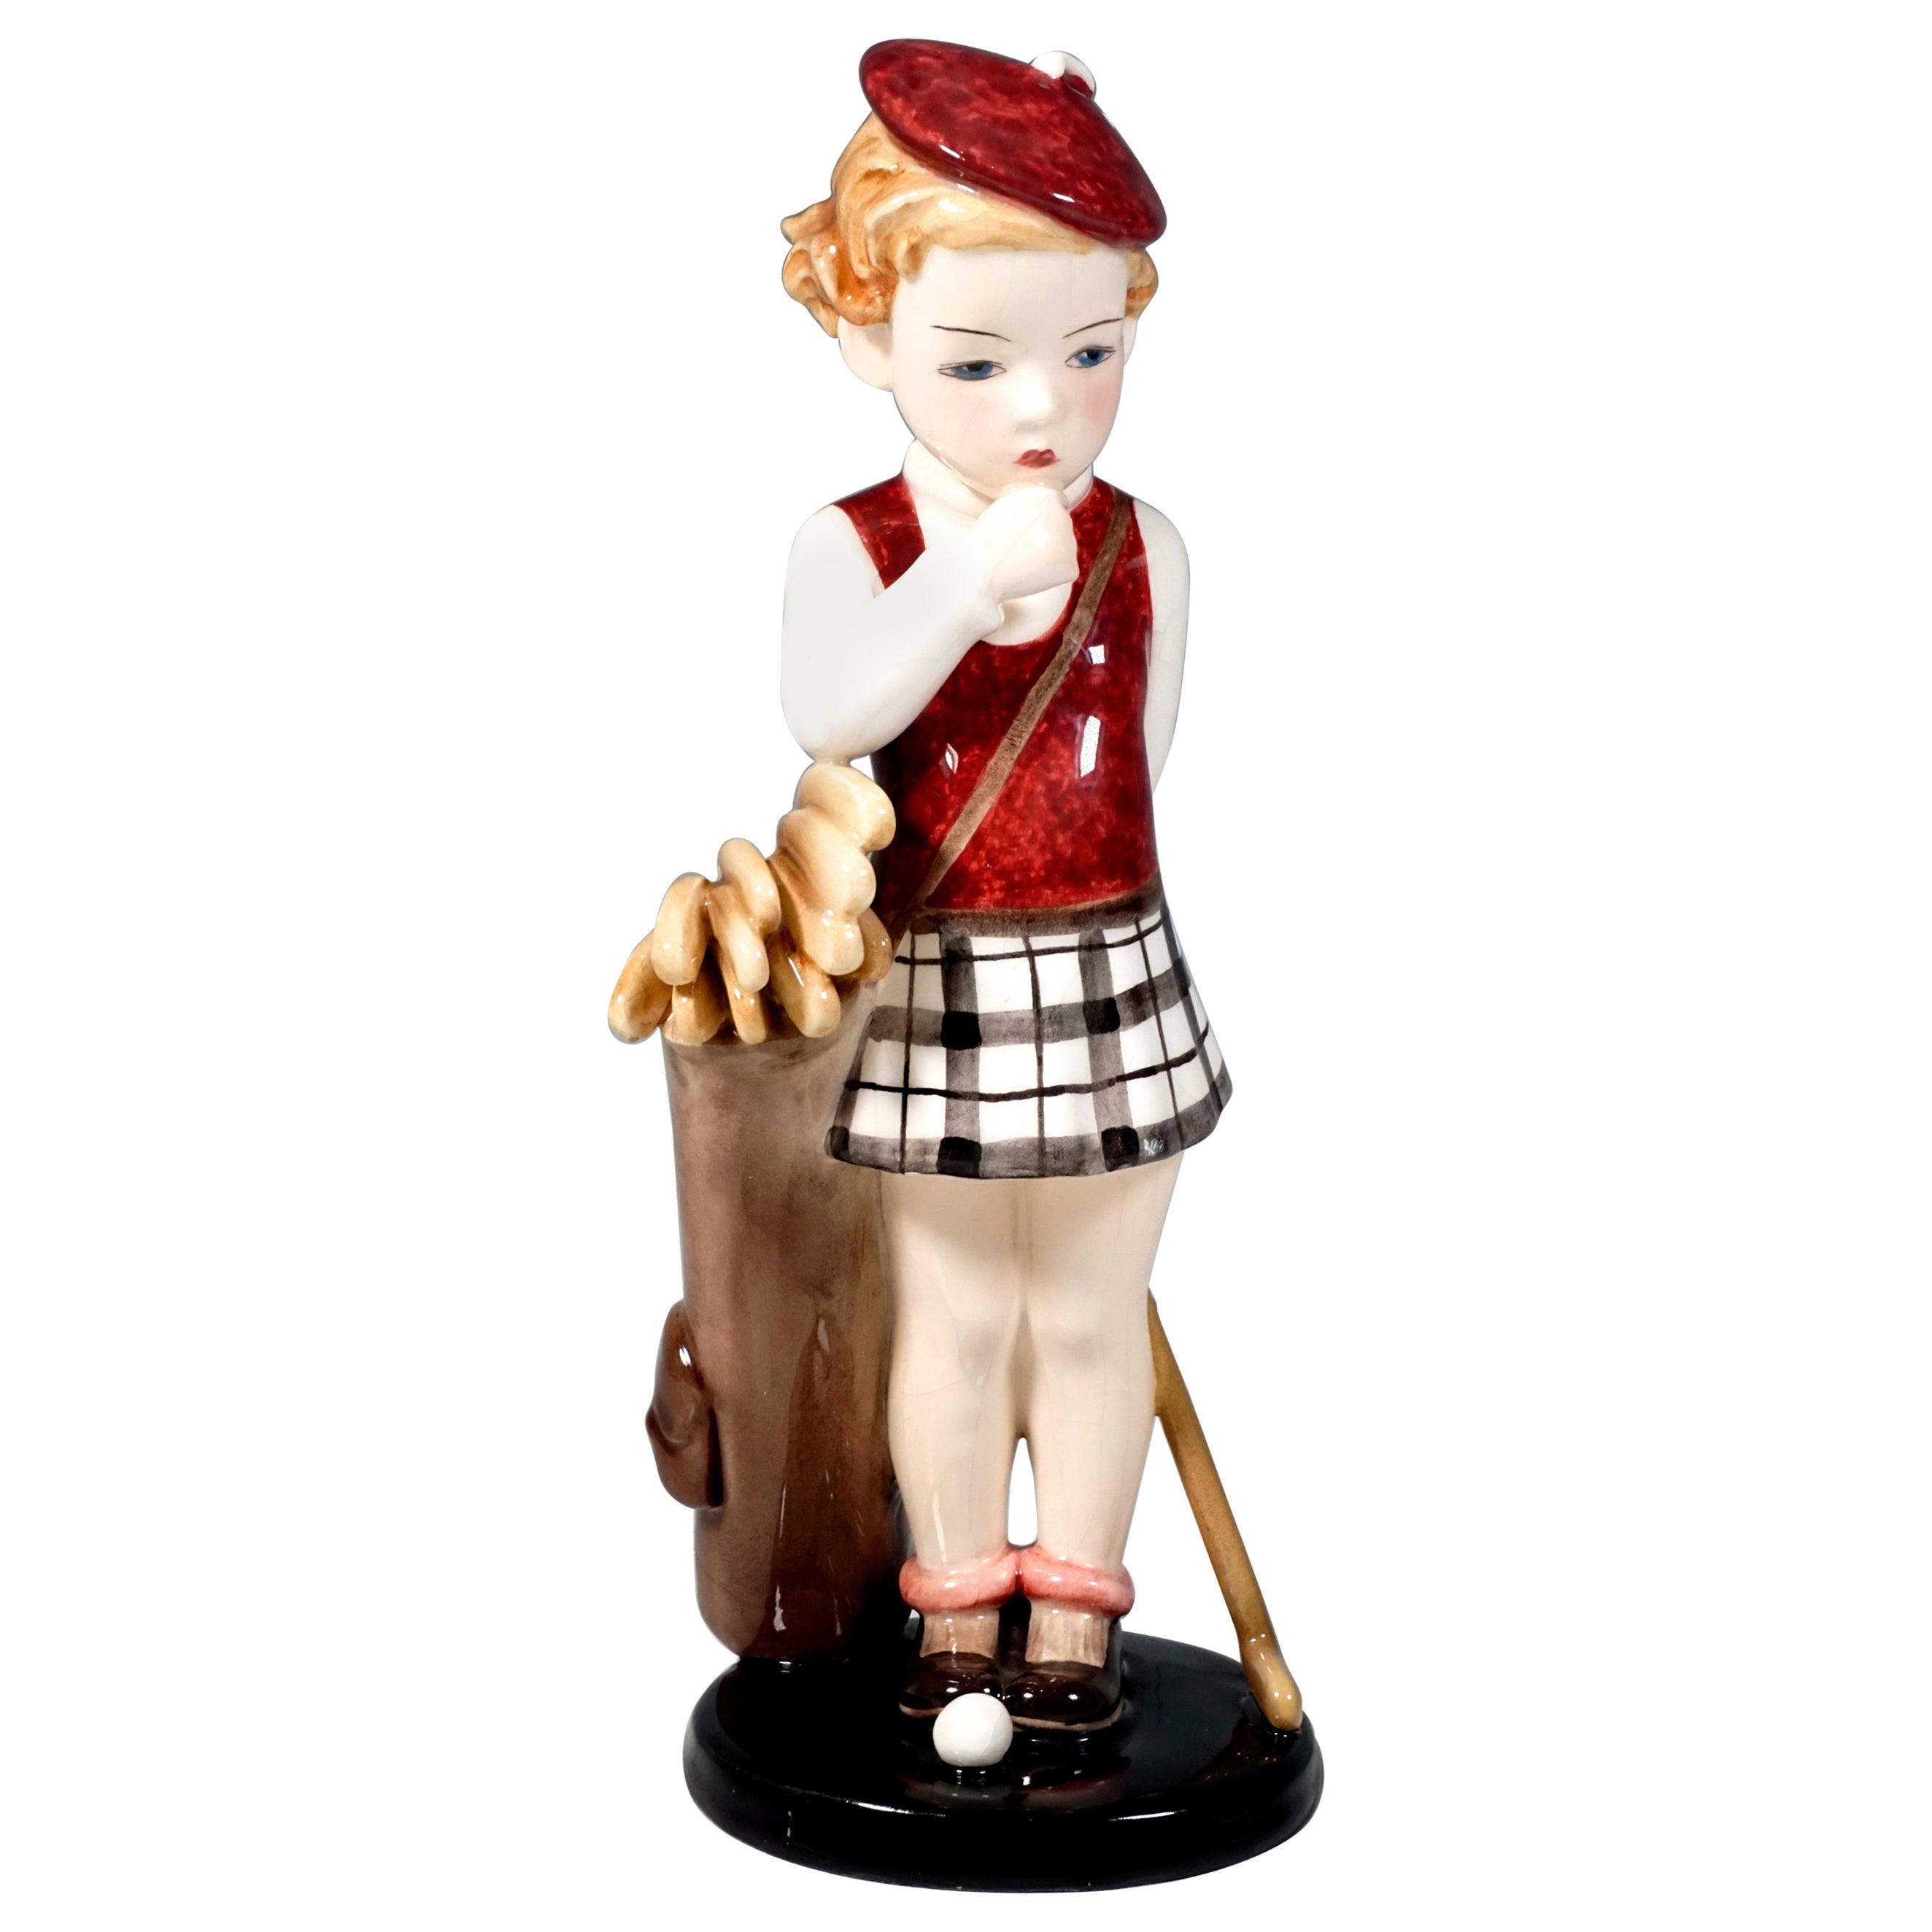 Goldscheider Art Deco Figurine Girl with Golf Bag by Stephan Dakon, circa 1937